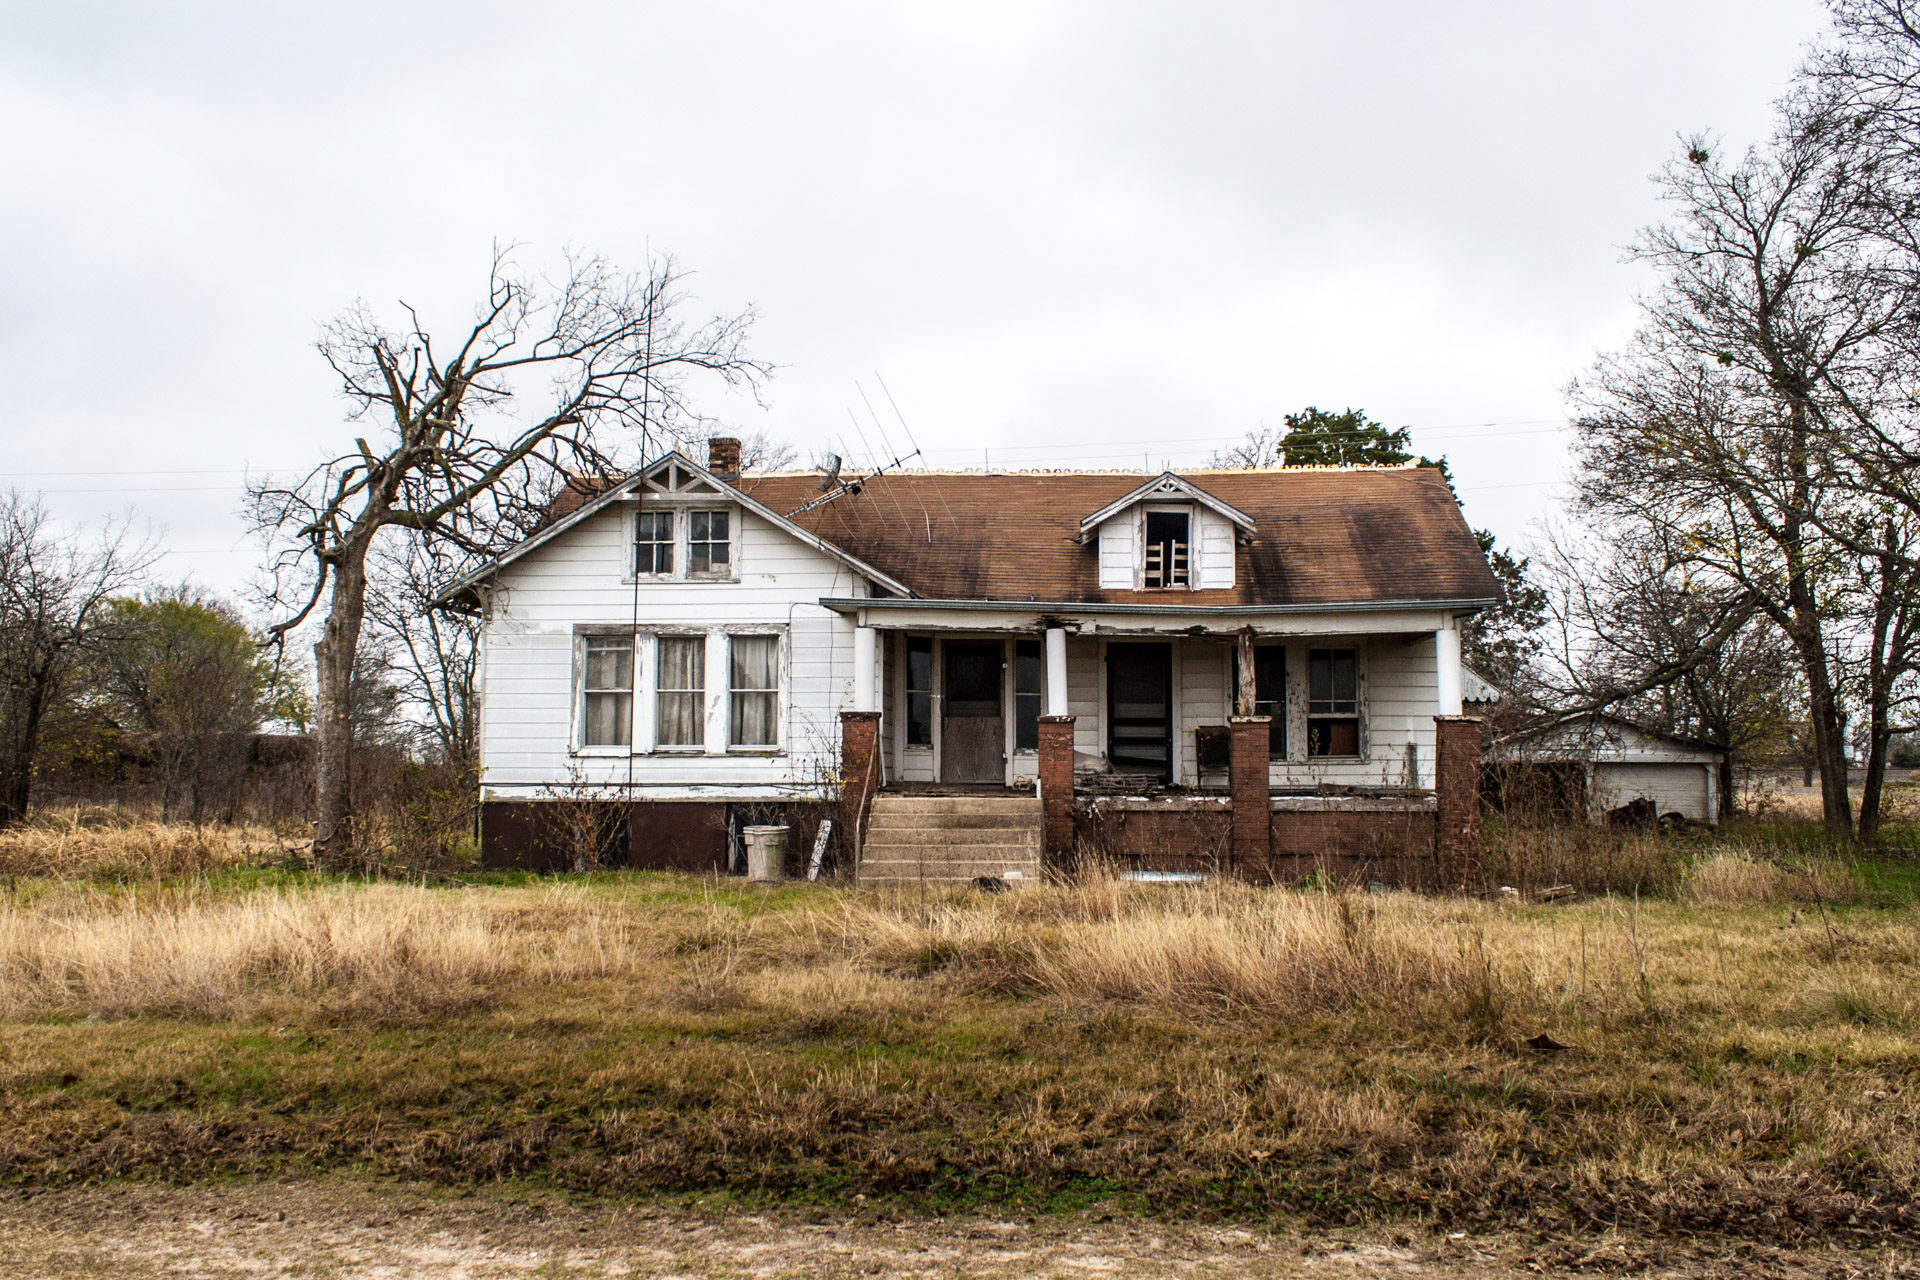 Buckholts, Texas - The Two Front Door House (front far)